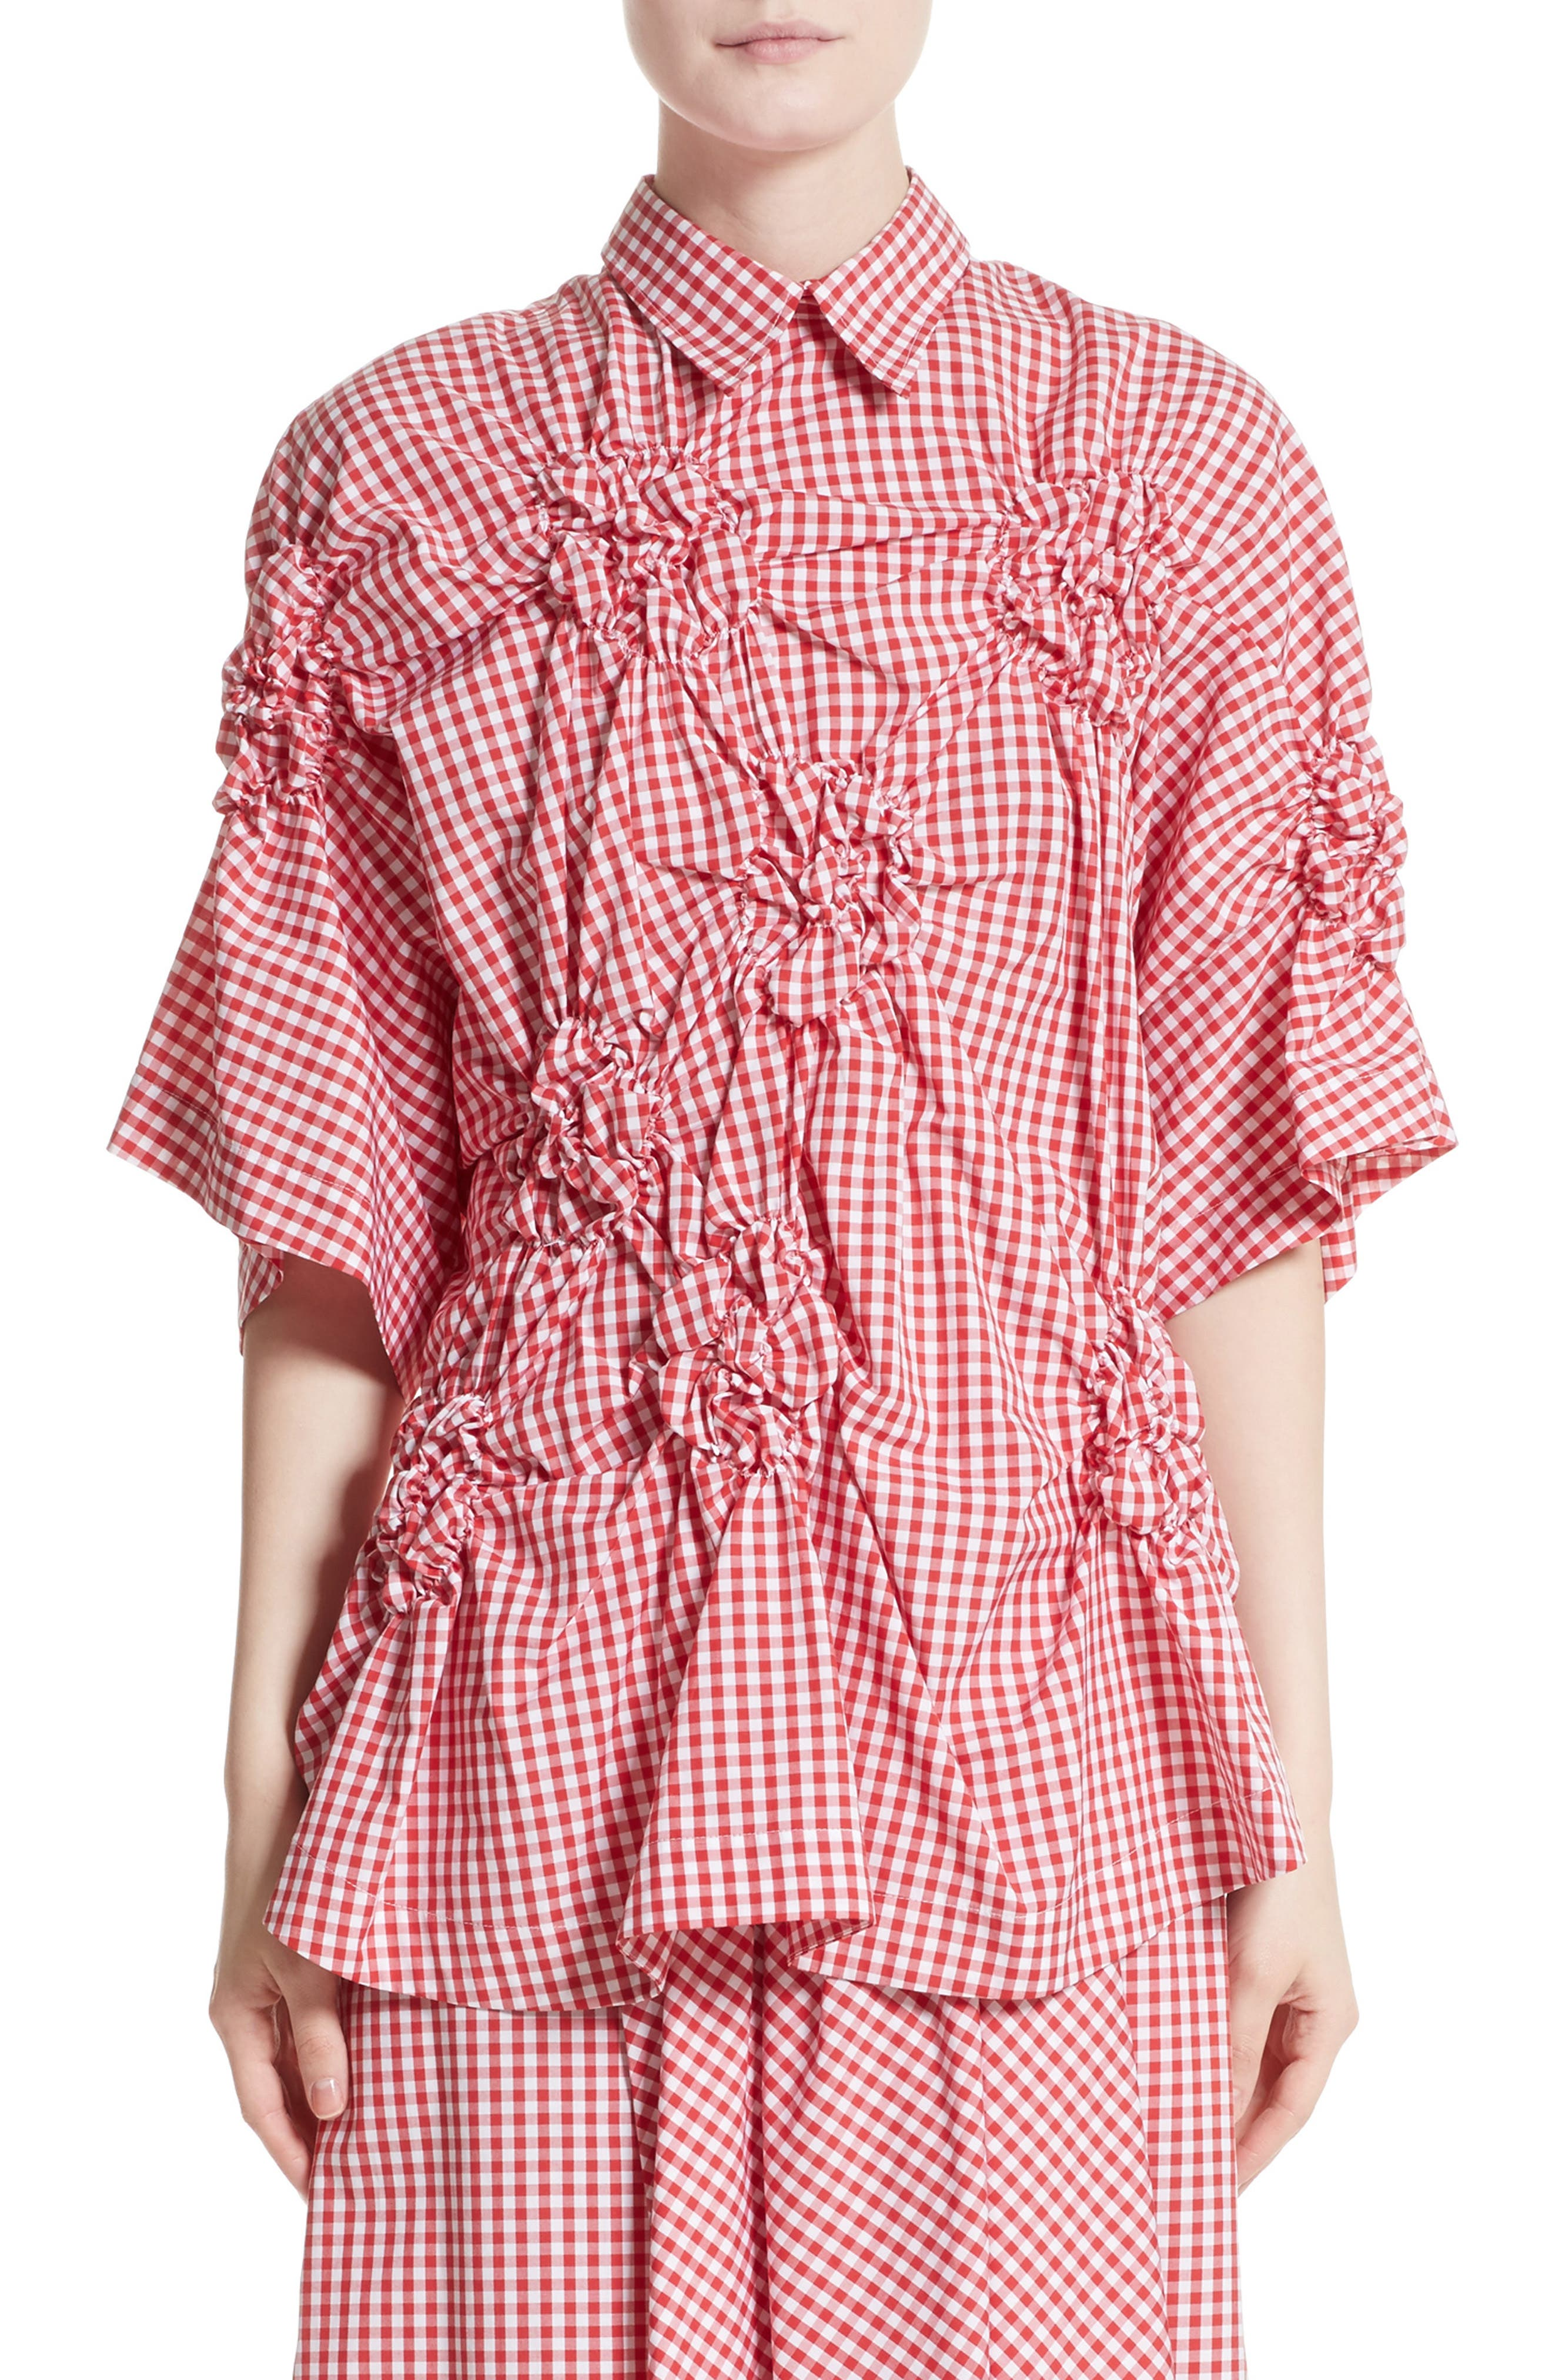 Simone Rocha Floral Smocked Gingham Shirt (Nordstrom Exclusive)